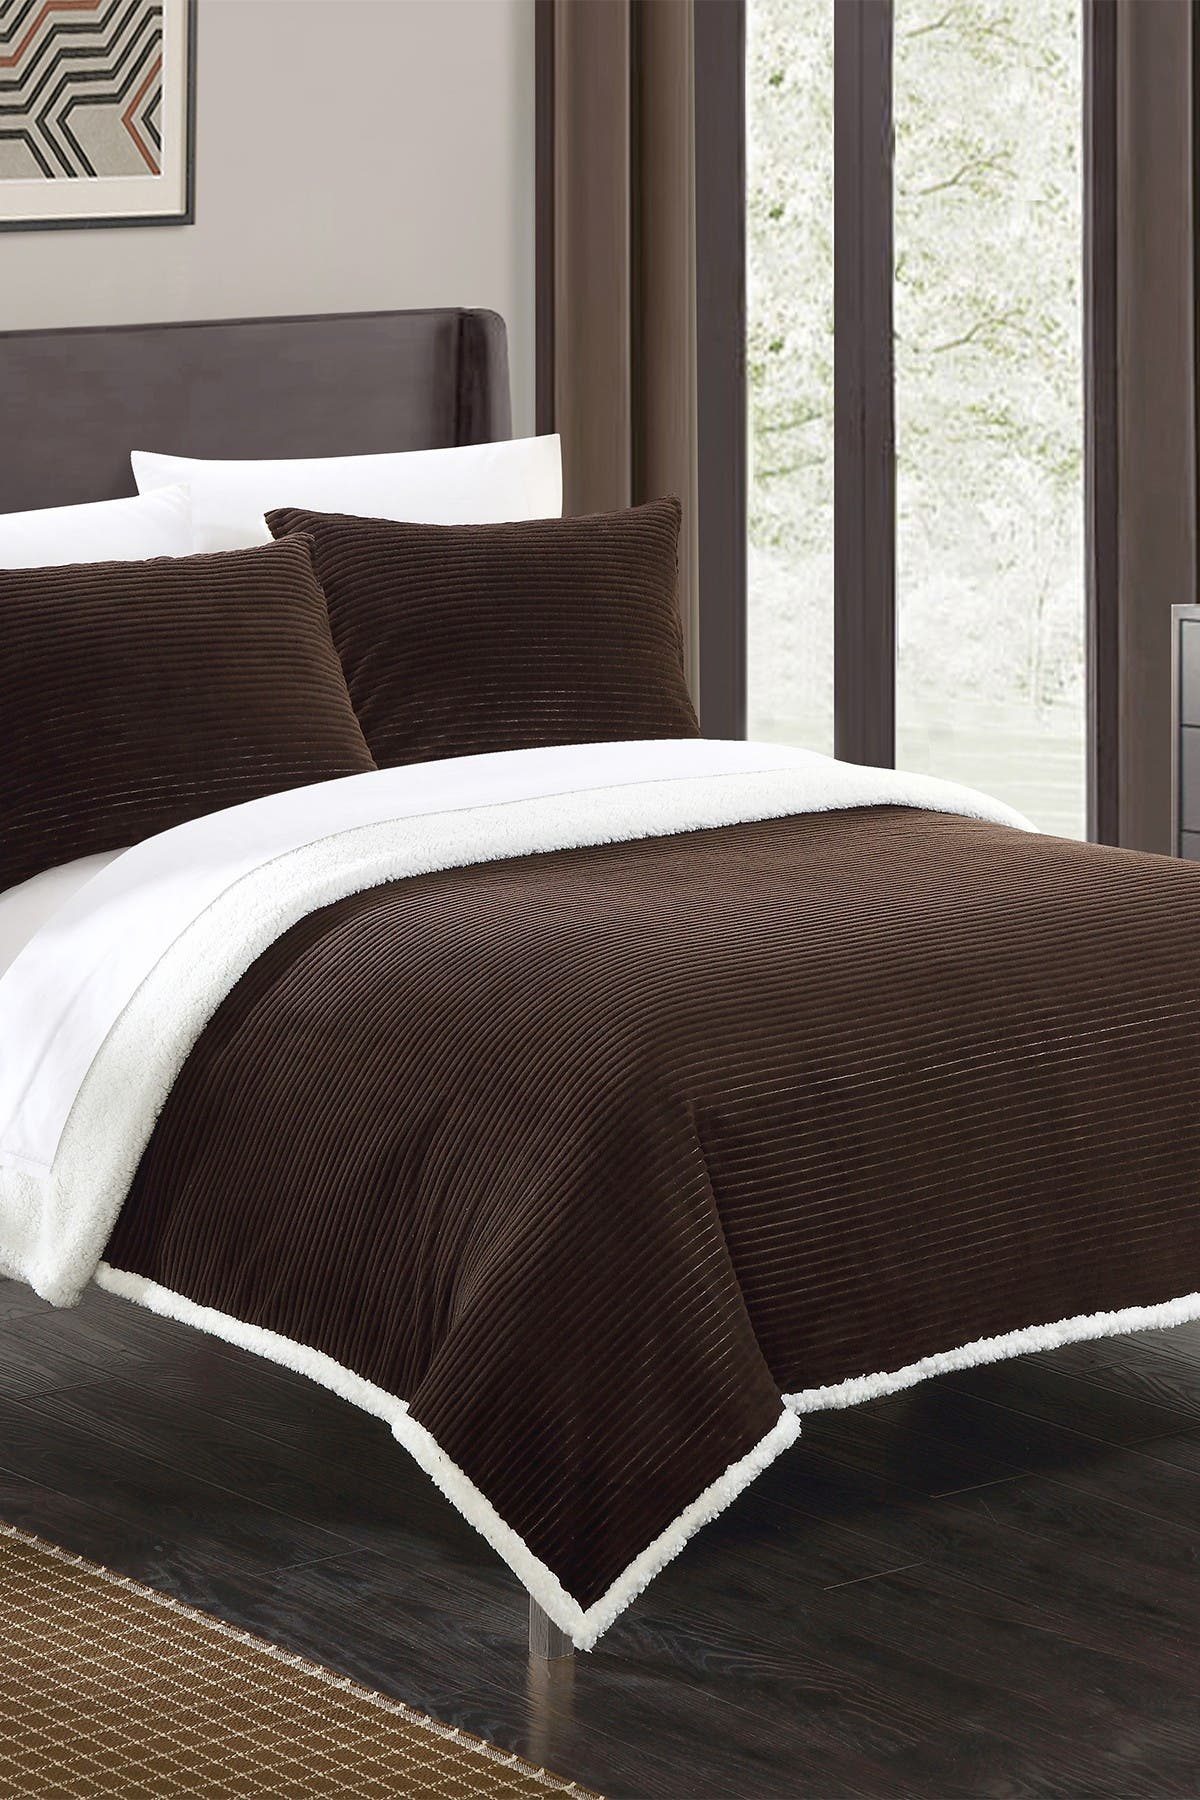 Chic Home Bedding Full/Queen Vargon Corduroy Textured Faux Shearling Blanket Set - Brown at Nordstrom Rack